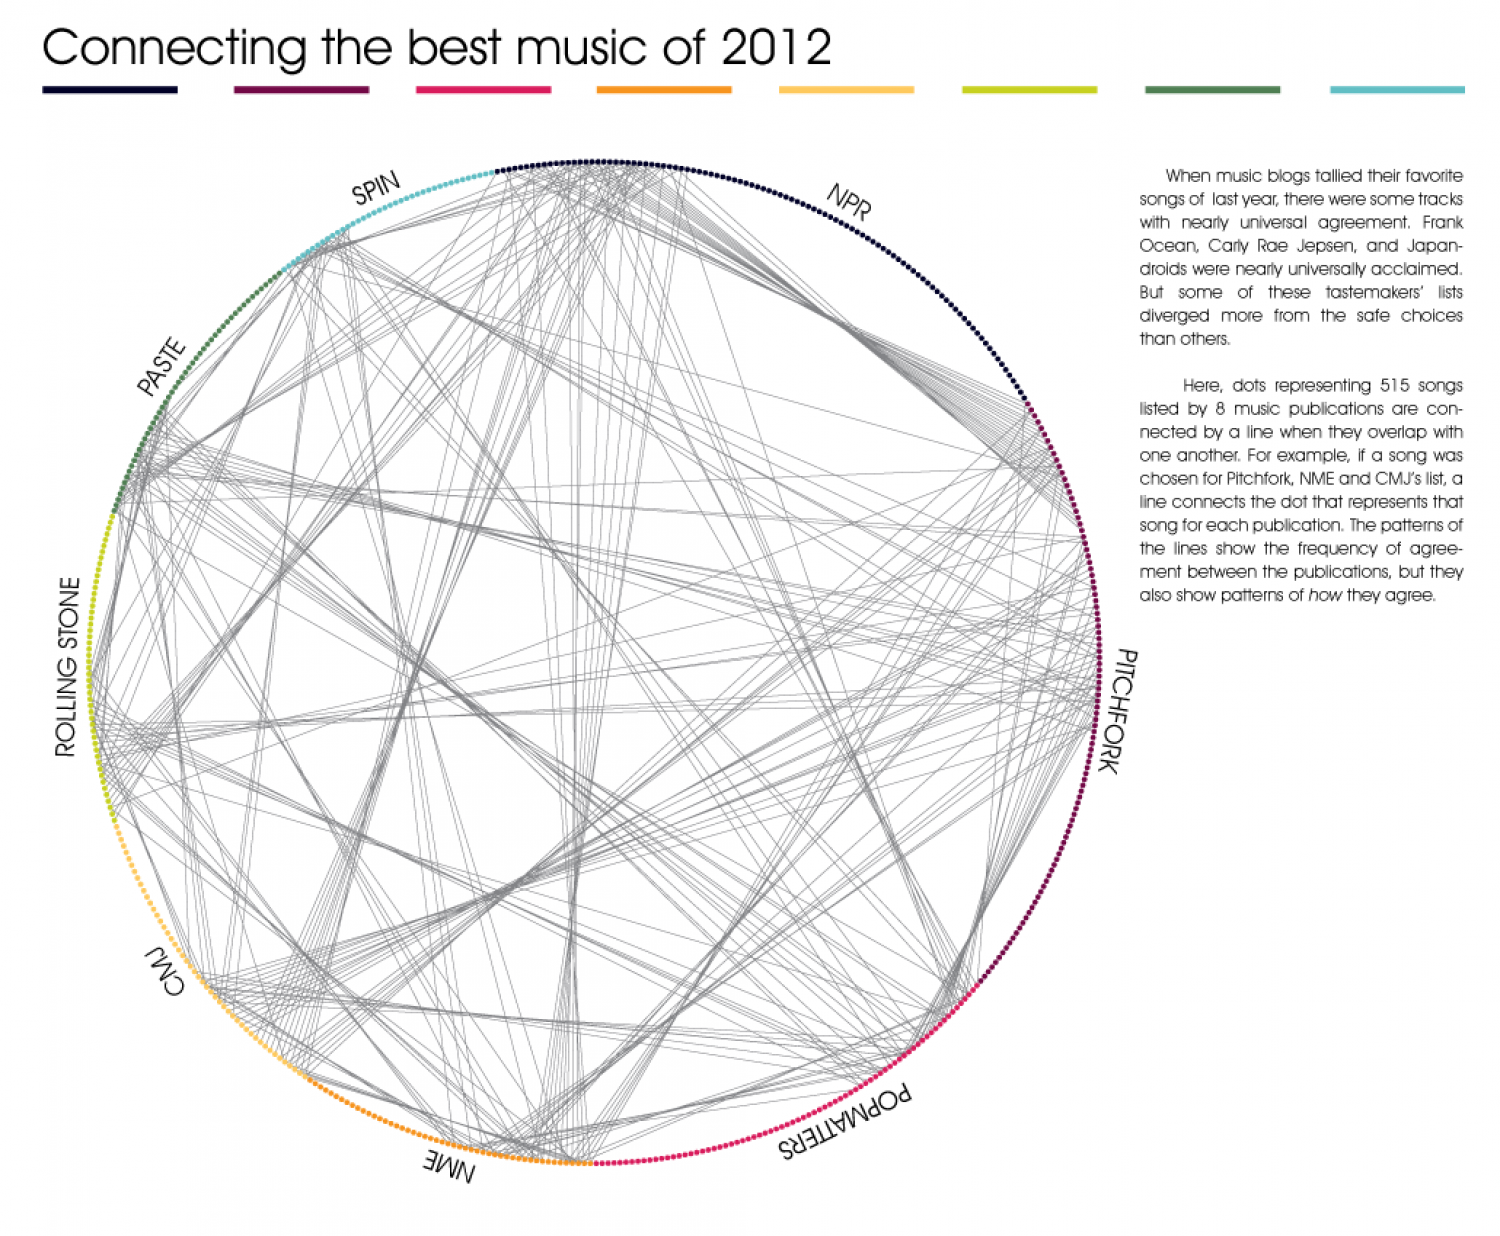 Connecting the best music of 2012 Infographic